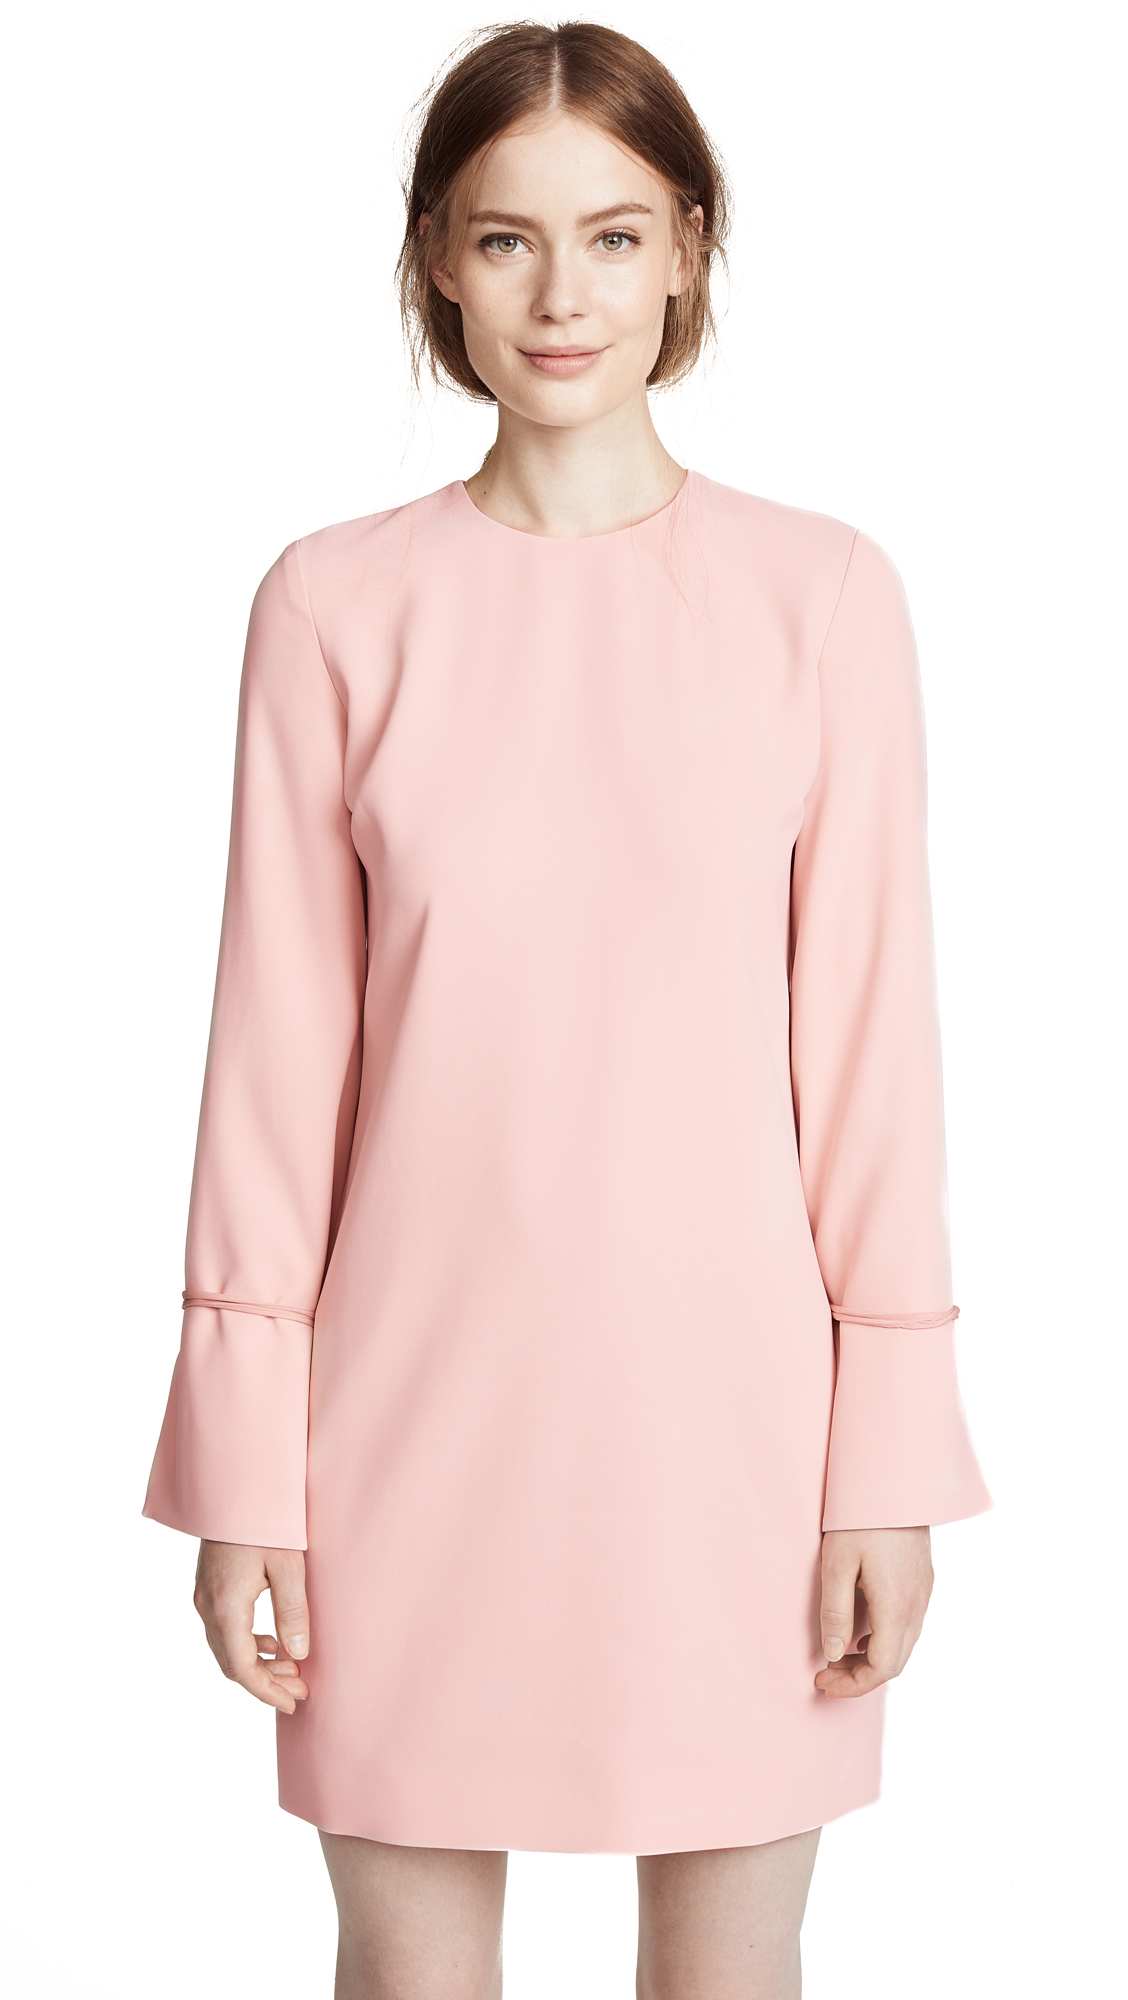 Victoria Victoria Beckham Tie Cuff Shift Dress In Pearl